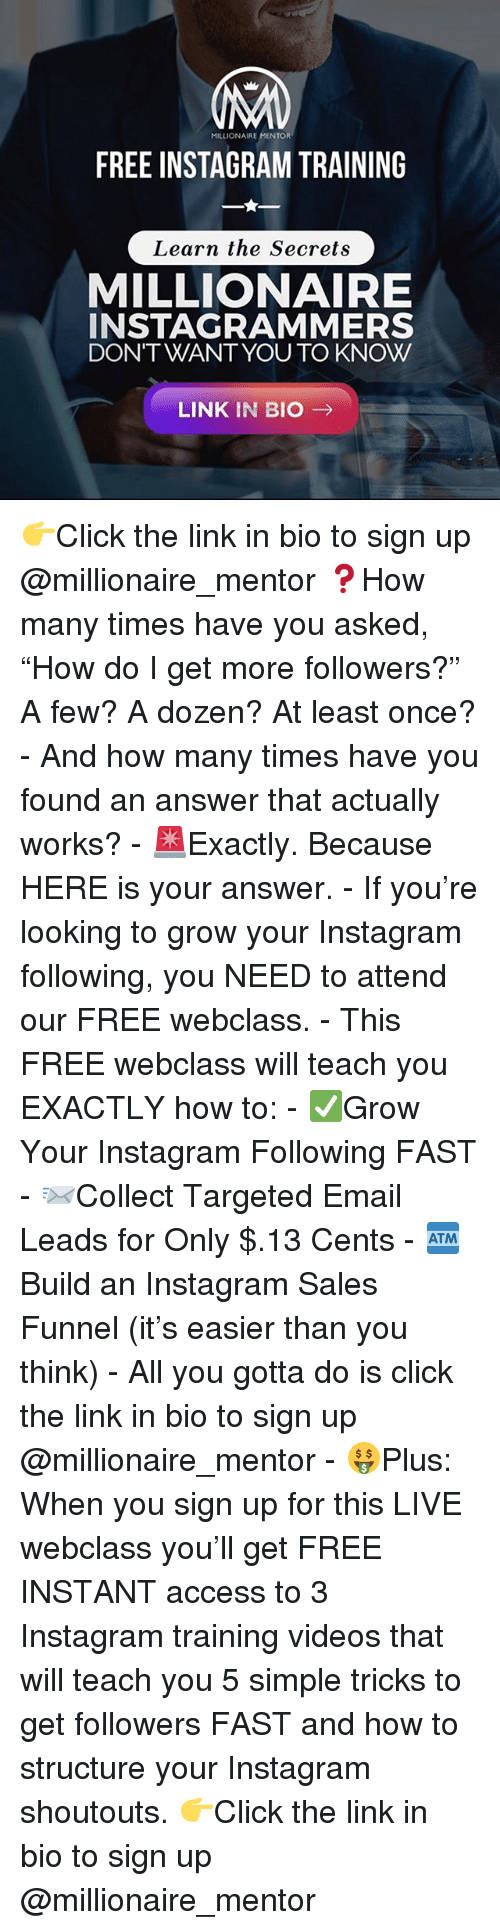 "Click, How Many Times, and Instagram: MILLIONAIRE MENTOR  FREE INSTAGRAM TRAINING  Learn the Secrets  MILLIONAIRE  INSTAGRAMMERS  DONTWANTYOU TO KNOW  LINK IN BIO → Click the link in bio to sign up @millionaire_mentor &#x;How many times have you asked, ""How do I get more followers?"" A few? A dozen? At least once? – And how many times have you found an answer that actually works? – úExactly. Because HERE is your answer. – If you're looking to grow your Instagram following, you NEED to attend our FREE webclass. – This FREE webclass will teach you EXACTLY how to: – &#x;Grow Your Instagram Following FAST – þCollect Targeted Email Leads for Only $. Cents – þBuild an Instagram Sales Funnel (it's easier than you think) – All you gotta do is click the link in bio to sign up @millionaire_mentor – Plus: When you sign up for this LIVE webclass you'll get FREE INSTANT access to  Instagram training videos that will teach you  simple tricks to get followers FAST and how to structure your Instagram shoutouts. Click the link in bio to sign up @millionaire_mentor"